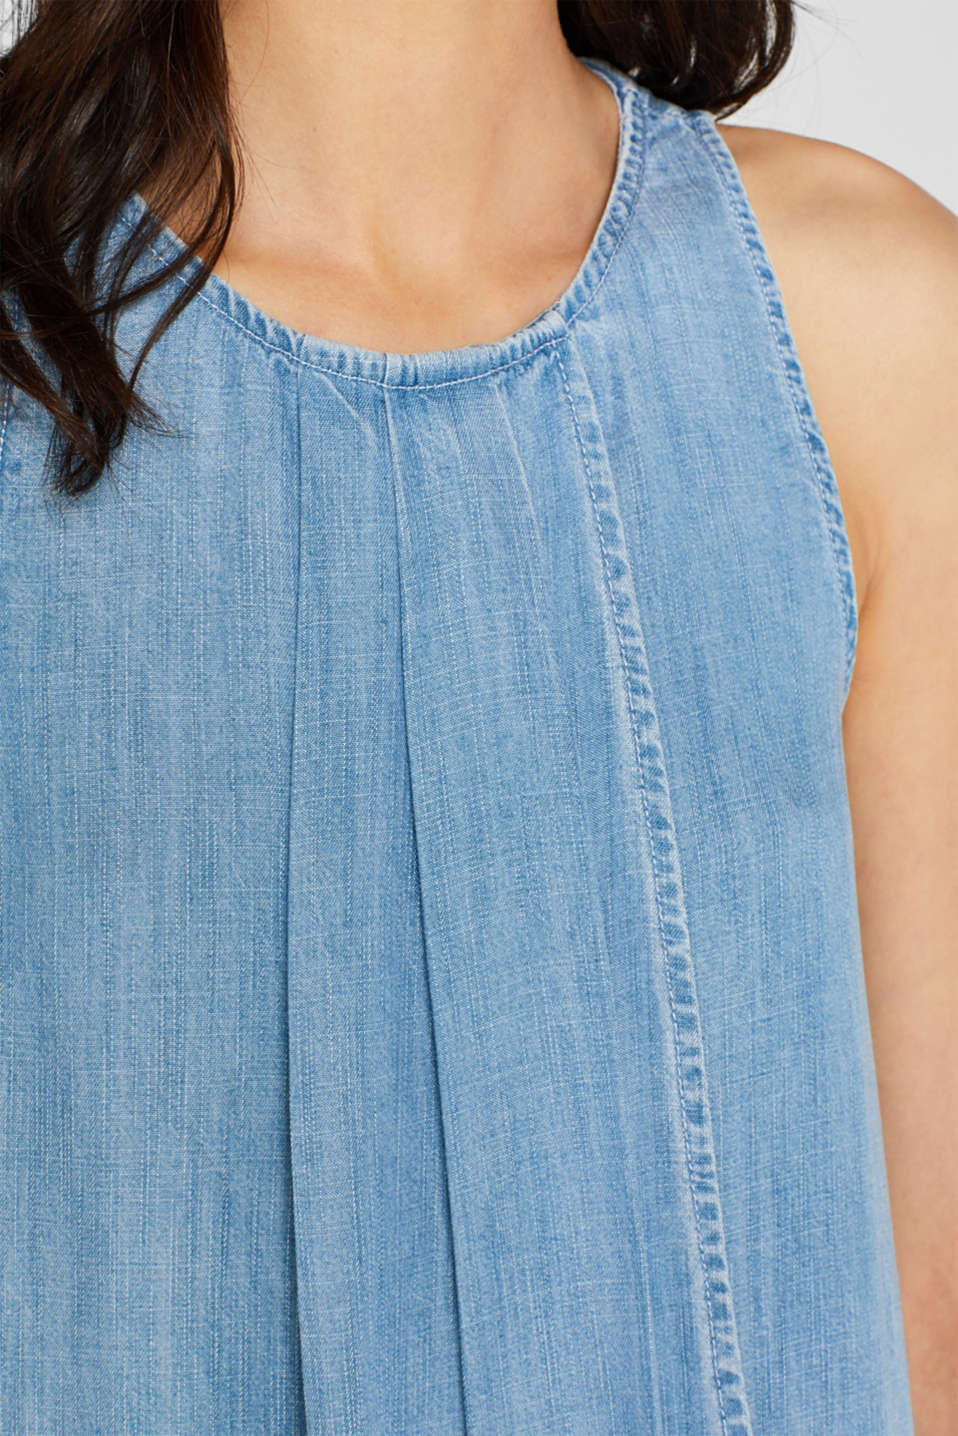 Denim-look layered dress in lyocell, BLUE LIGHT WASH, detail image number 3